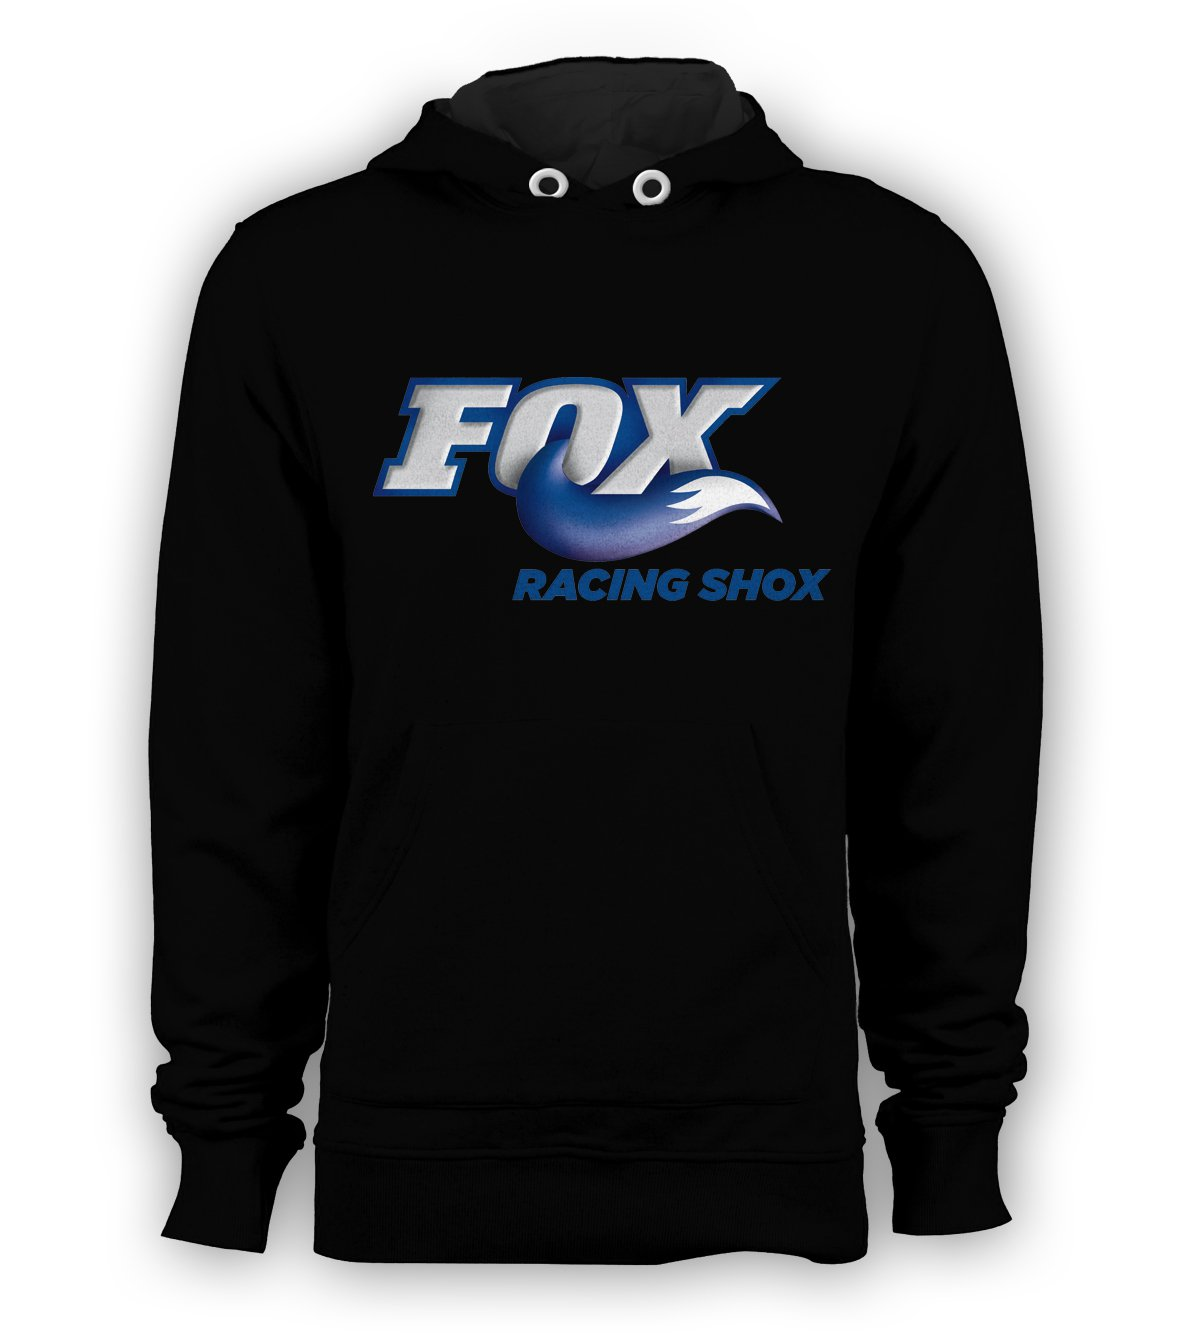 Fox Racing Shox Pullover Hoodie Men BMX Skateboard X-Games Sweatshirts Size S to 3XL New Black